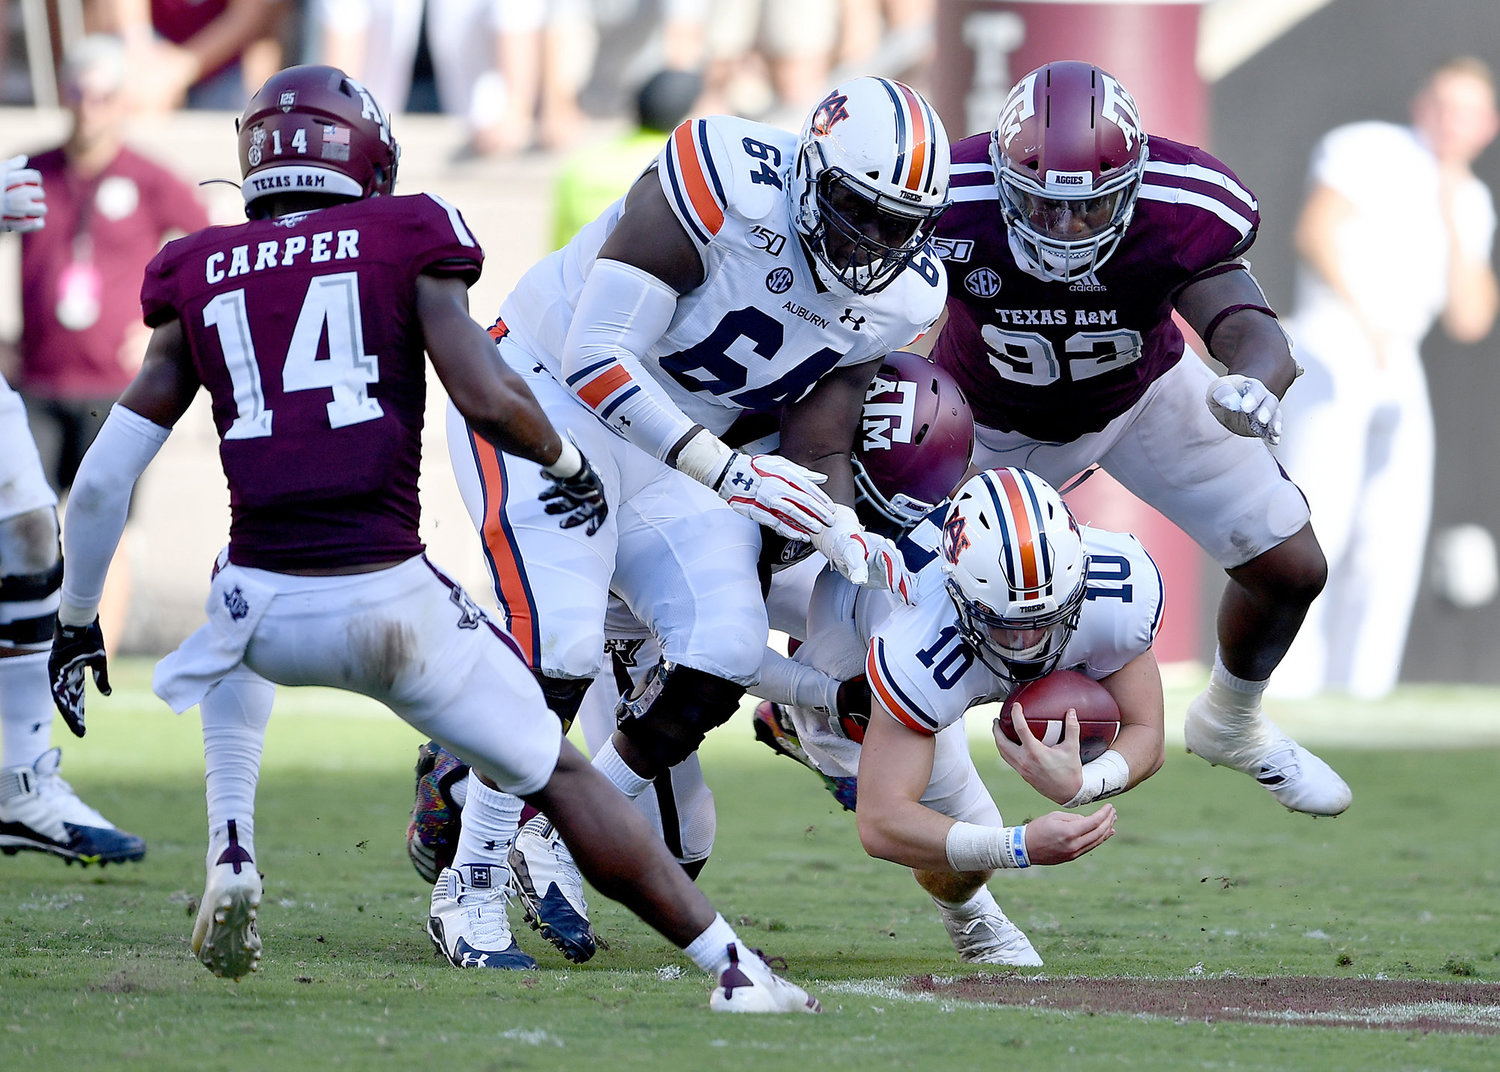 Auburn Tigers quarterback Bo Nix (10) dives for extra yards on a quarterback keeper during the second half of an NCAA football game against the Texas A&M Aggies Saturday, Sept. 21, 2019, at Kyle Field in College Station Texas. Auburn wins 28-20.